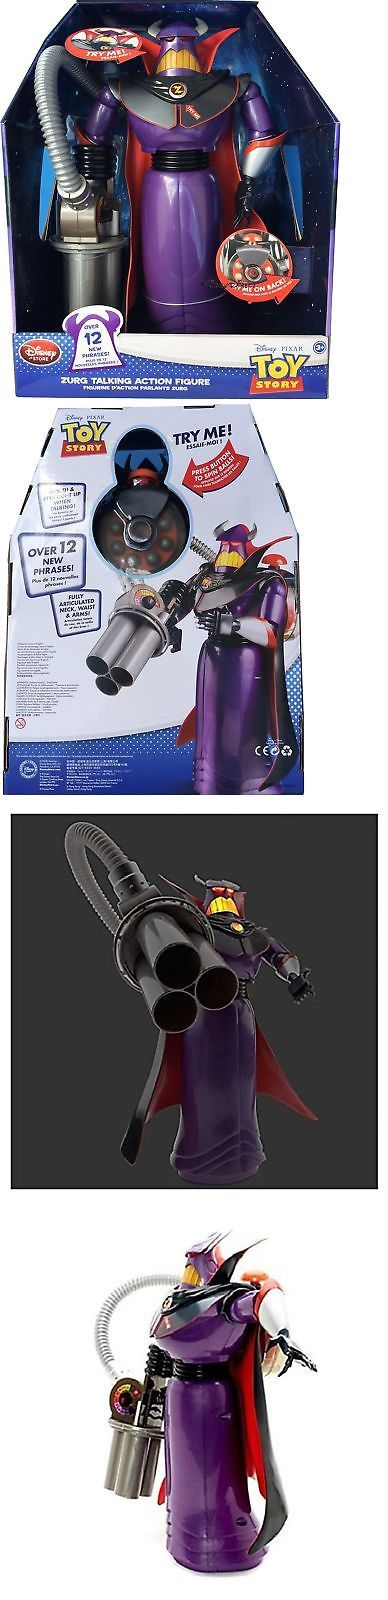 Toy Story 19223: Toy Story 14 Deluxe Talking Zurg Action Figure By Disney New -> BUY IT NOW ONLY: $68.27 on eBay!